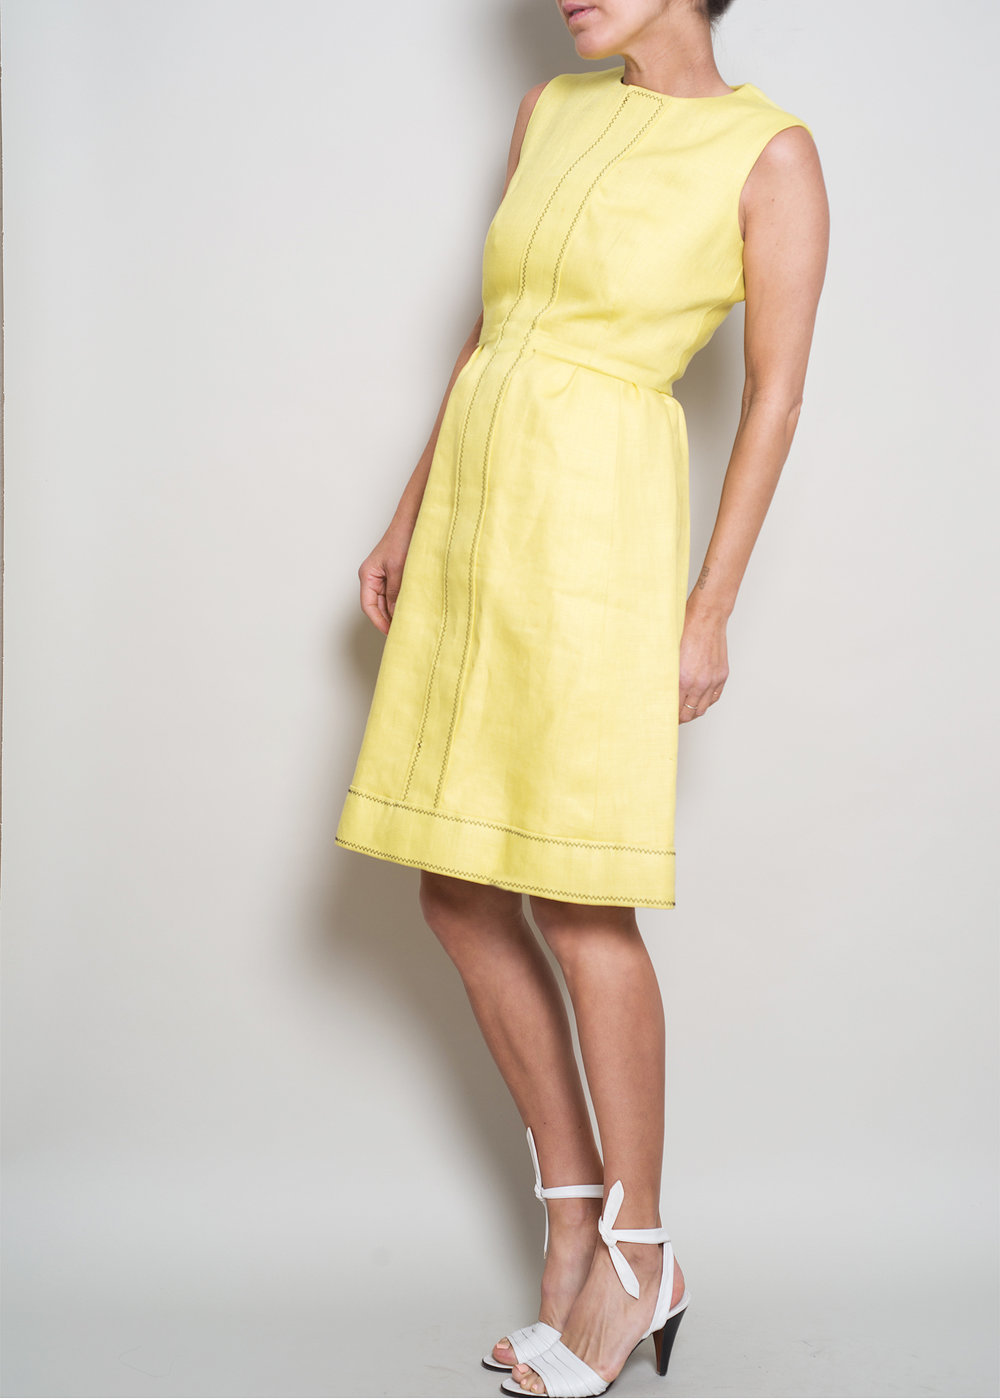 1970s GIVENCHY Yellow Linen Summer shift dress from A PART OF THE REST VINTAGE